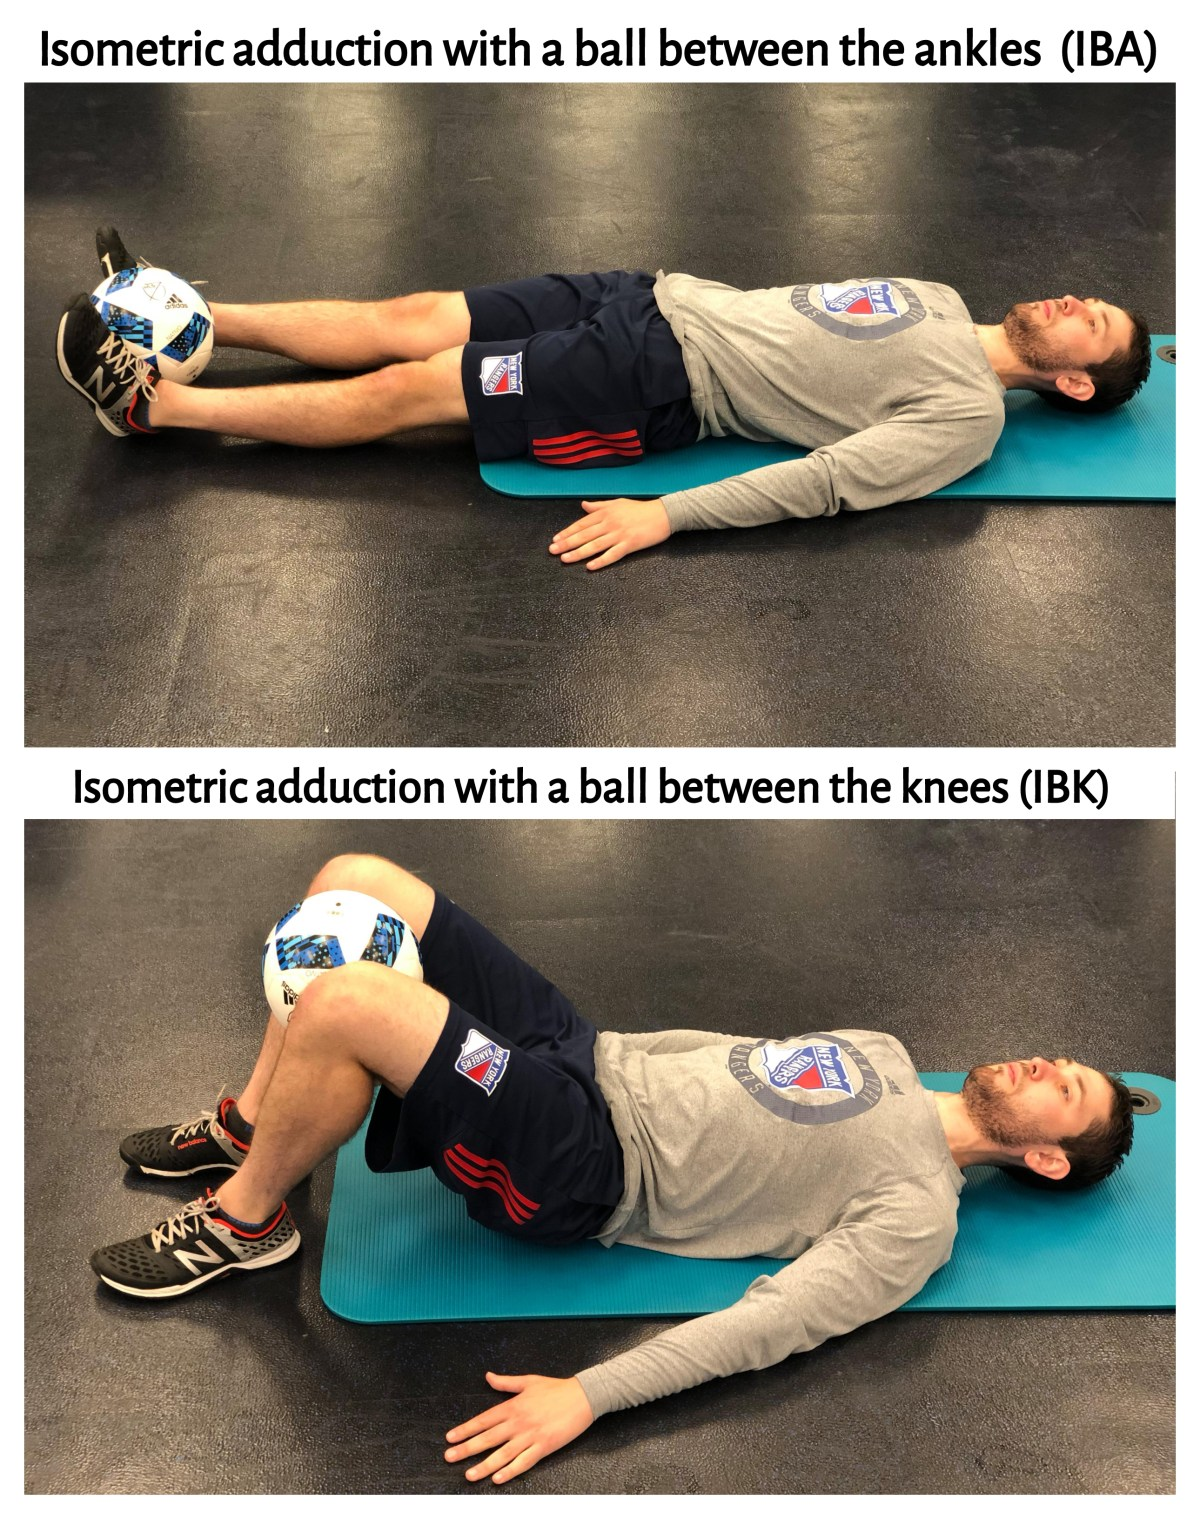 Hip-adduction-exercises-isometric-squeeze-ball-between-knees-ankles